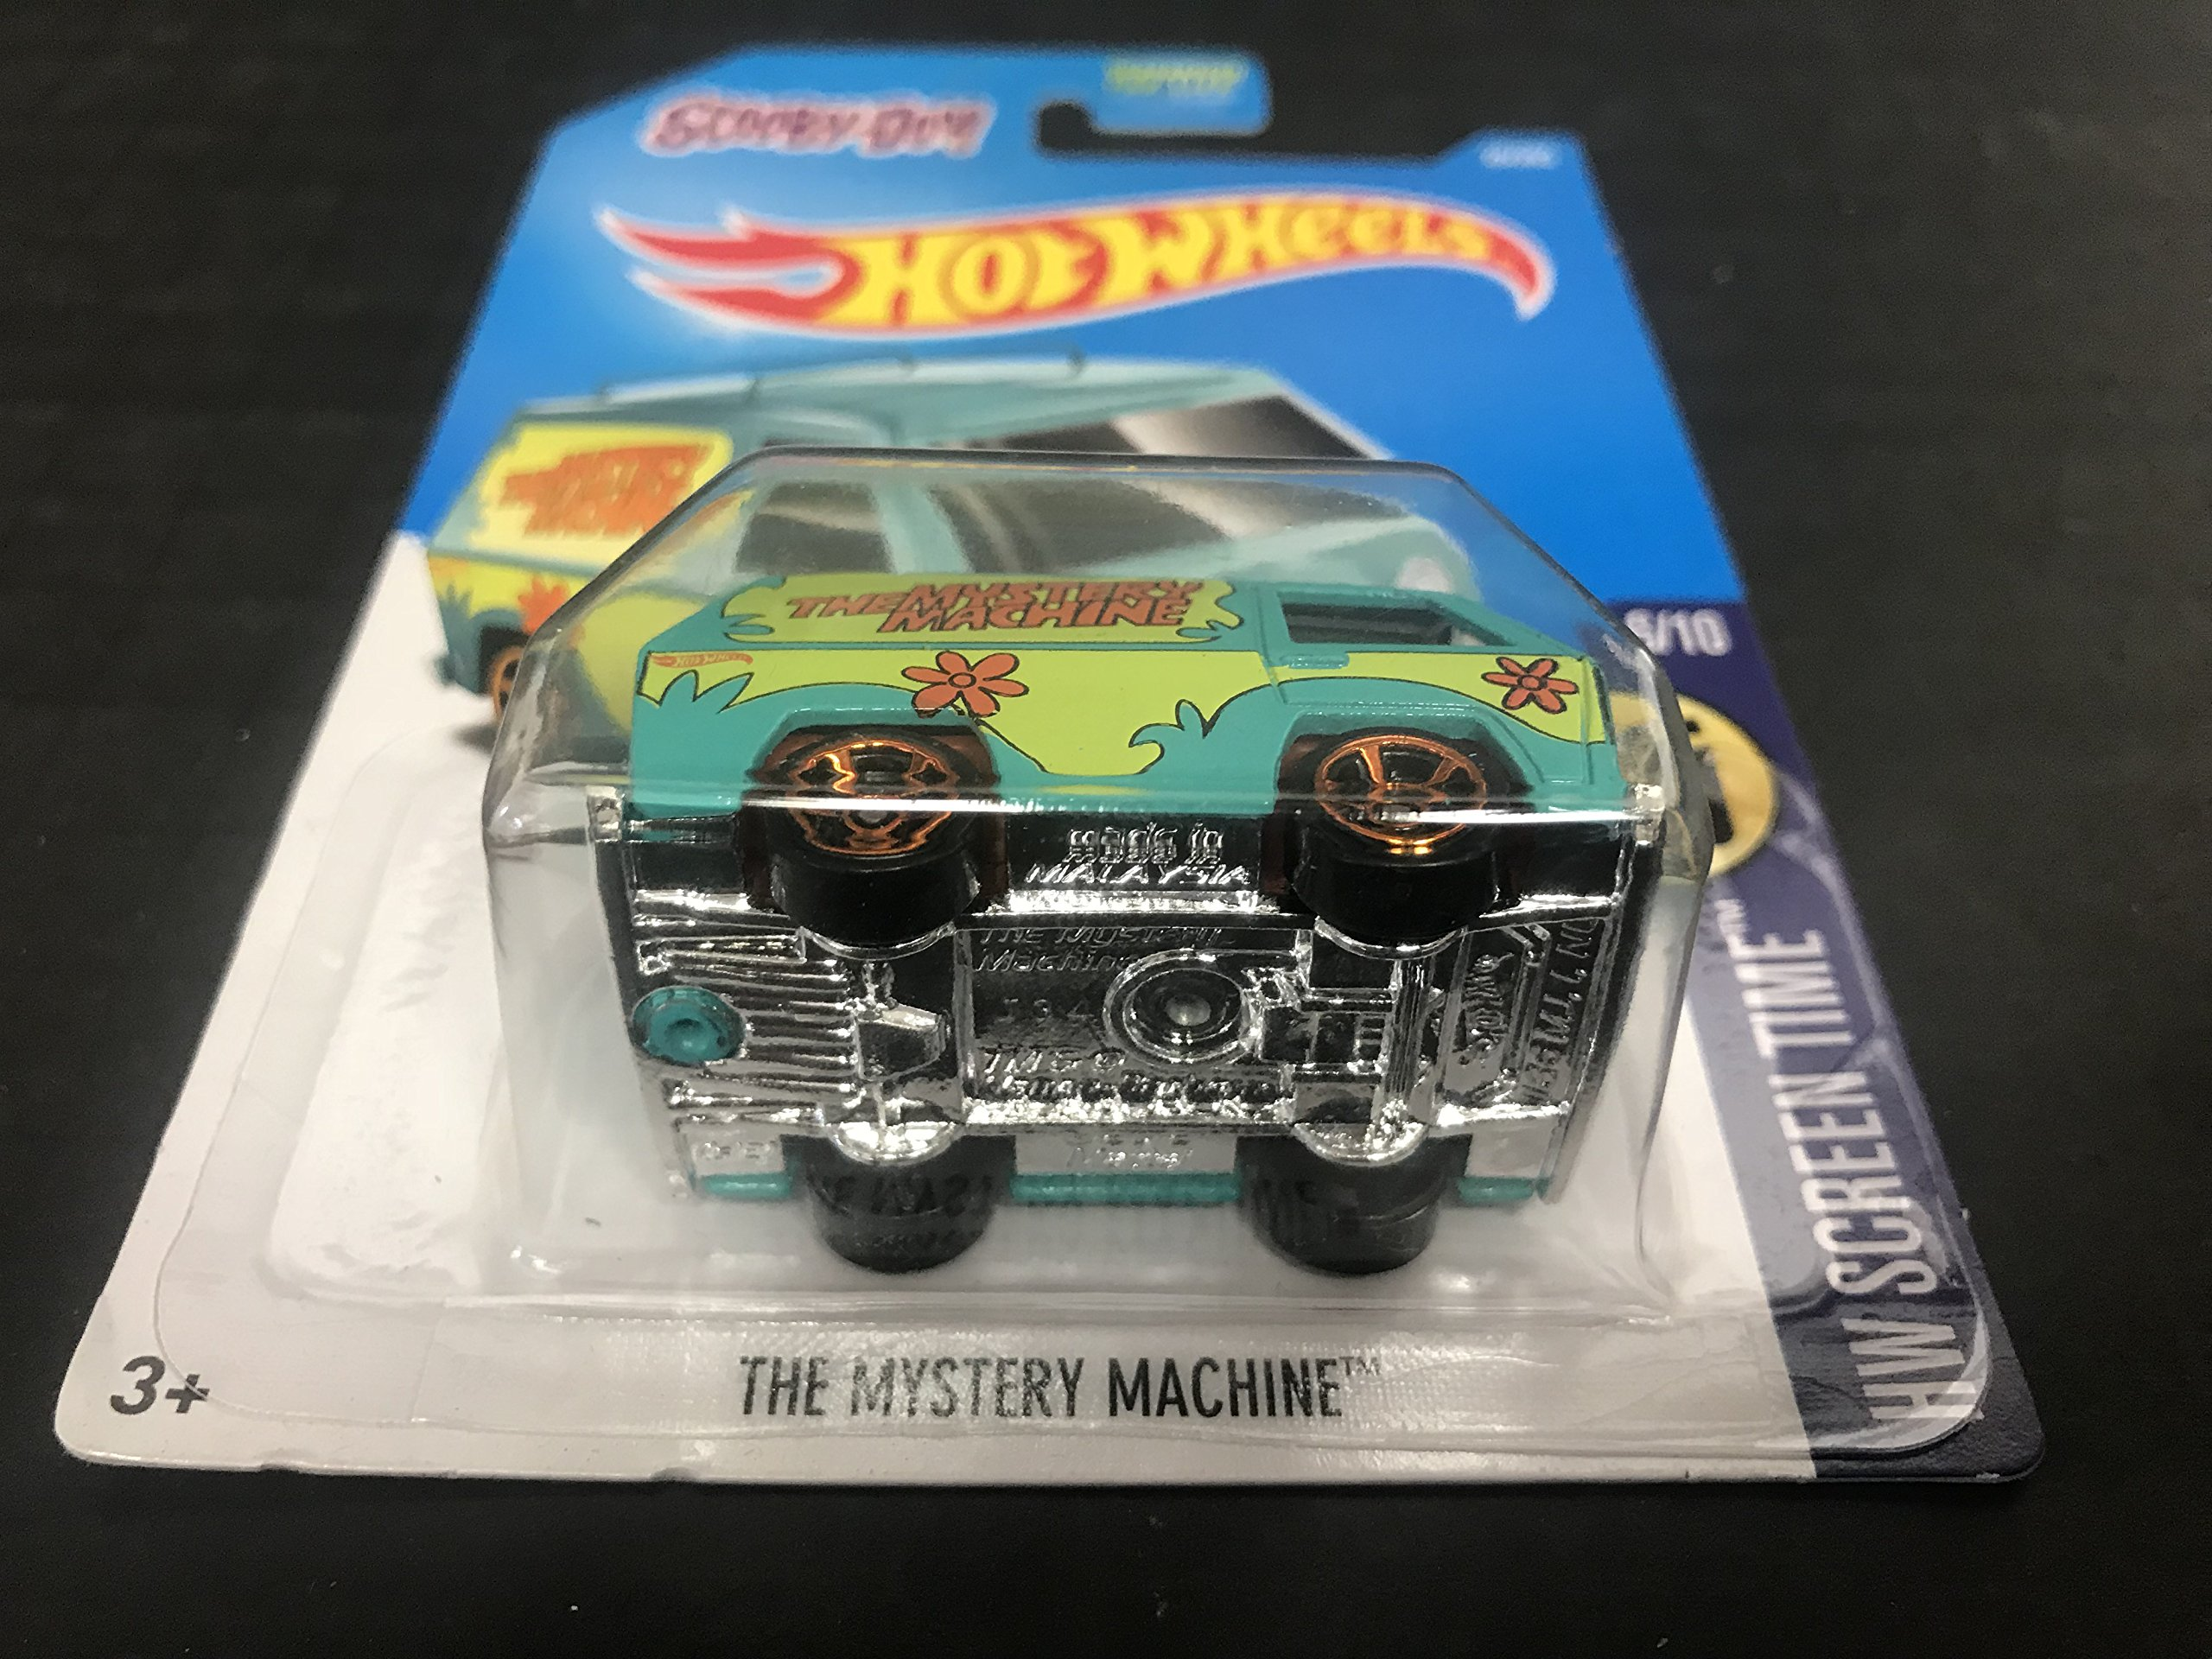 Scooby Doo THE MYSTERY MACHINE 2016 Hot Wheels 28/365 HW SCREEN TIME